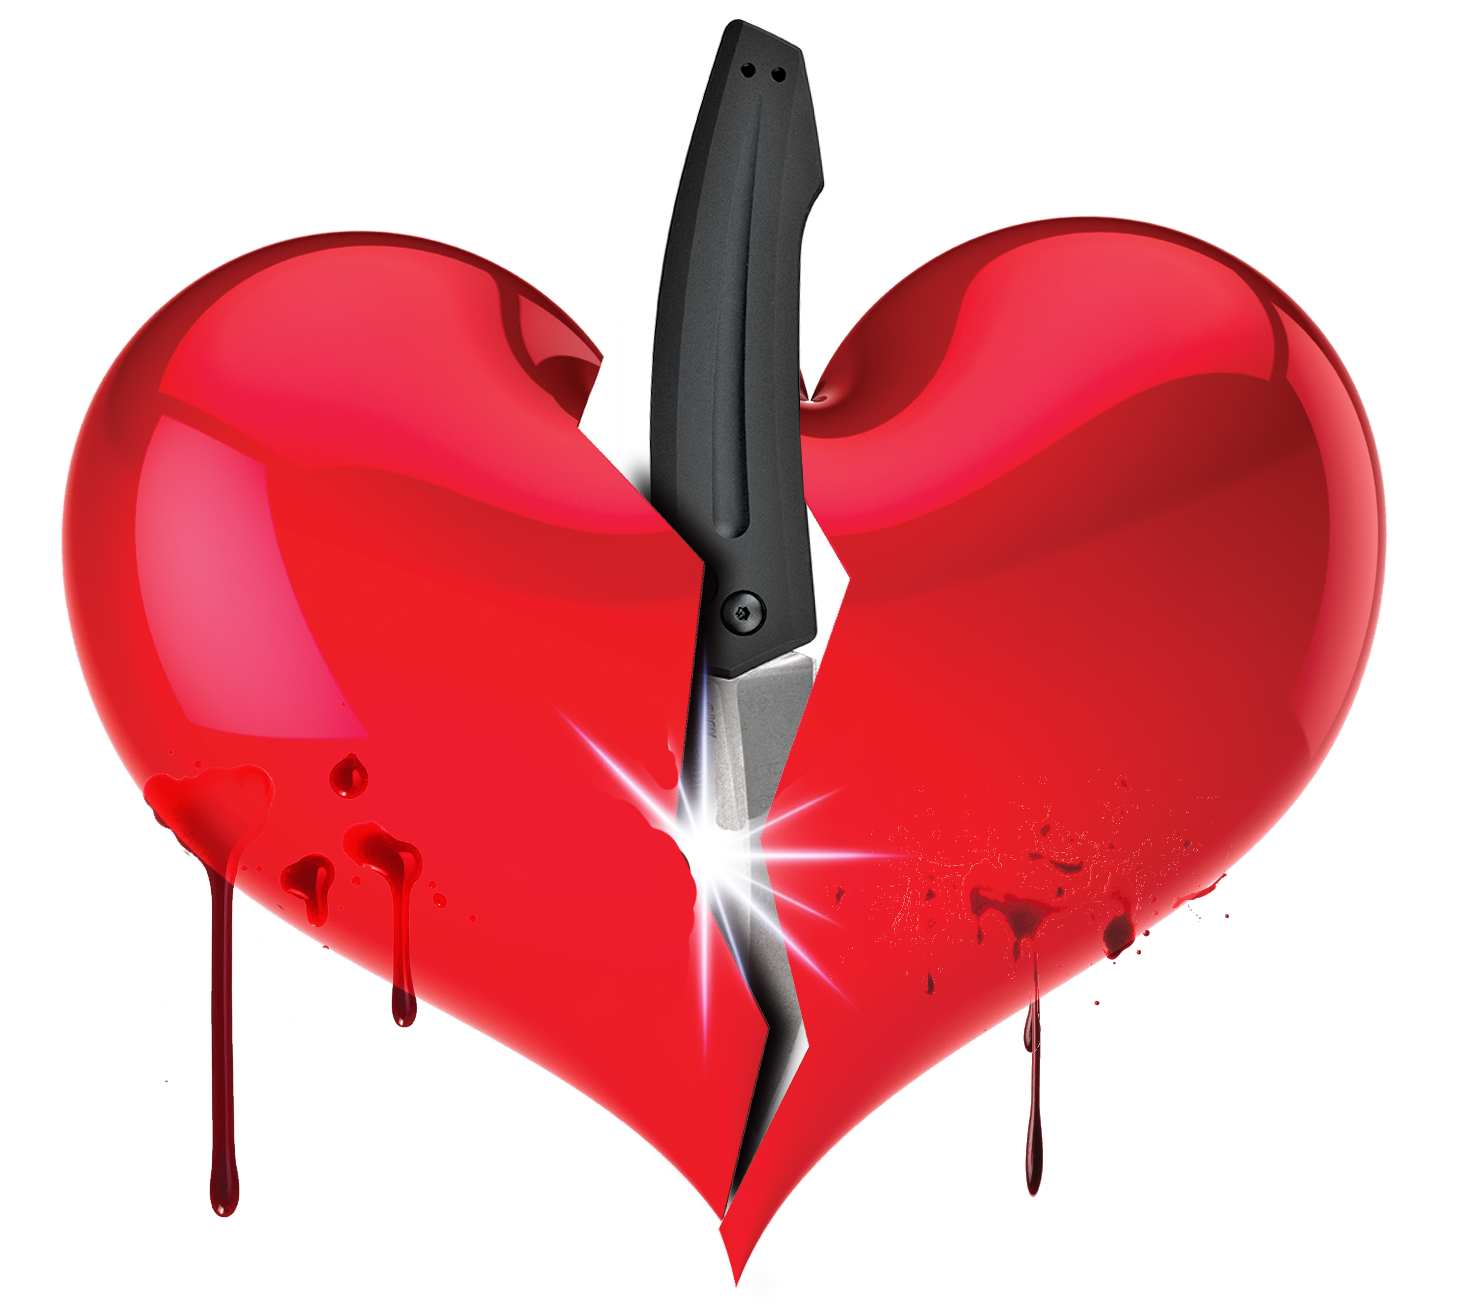 Realistic Knife In The Heart Drawing: Clipart Hearts Free Download On WebStockReview